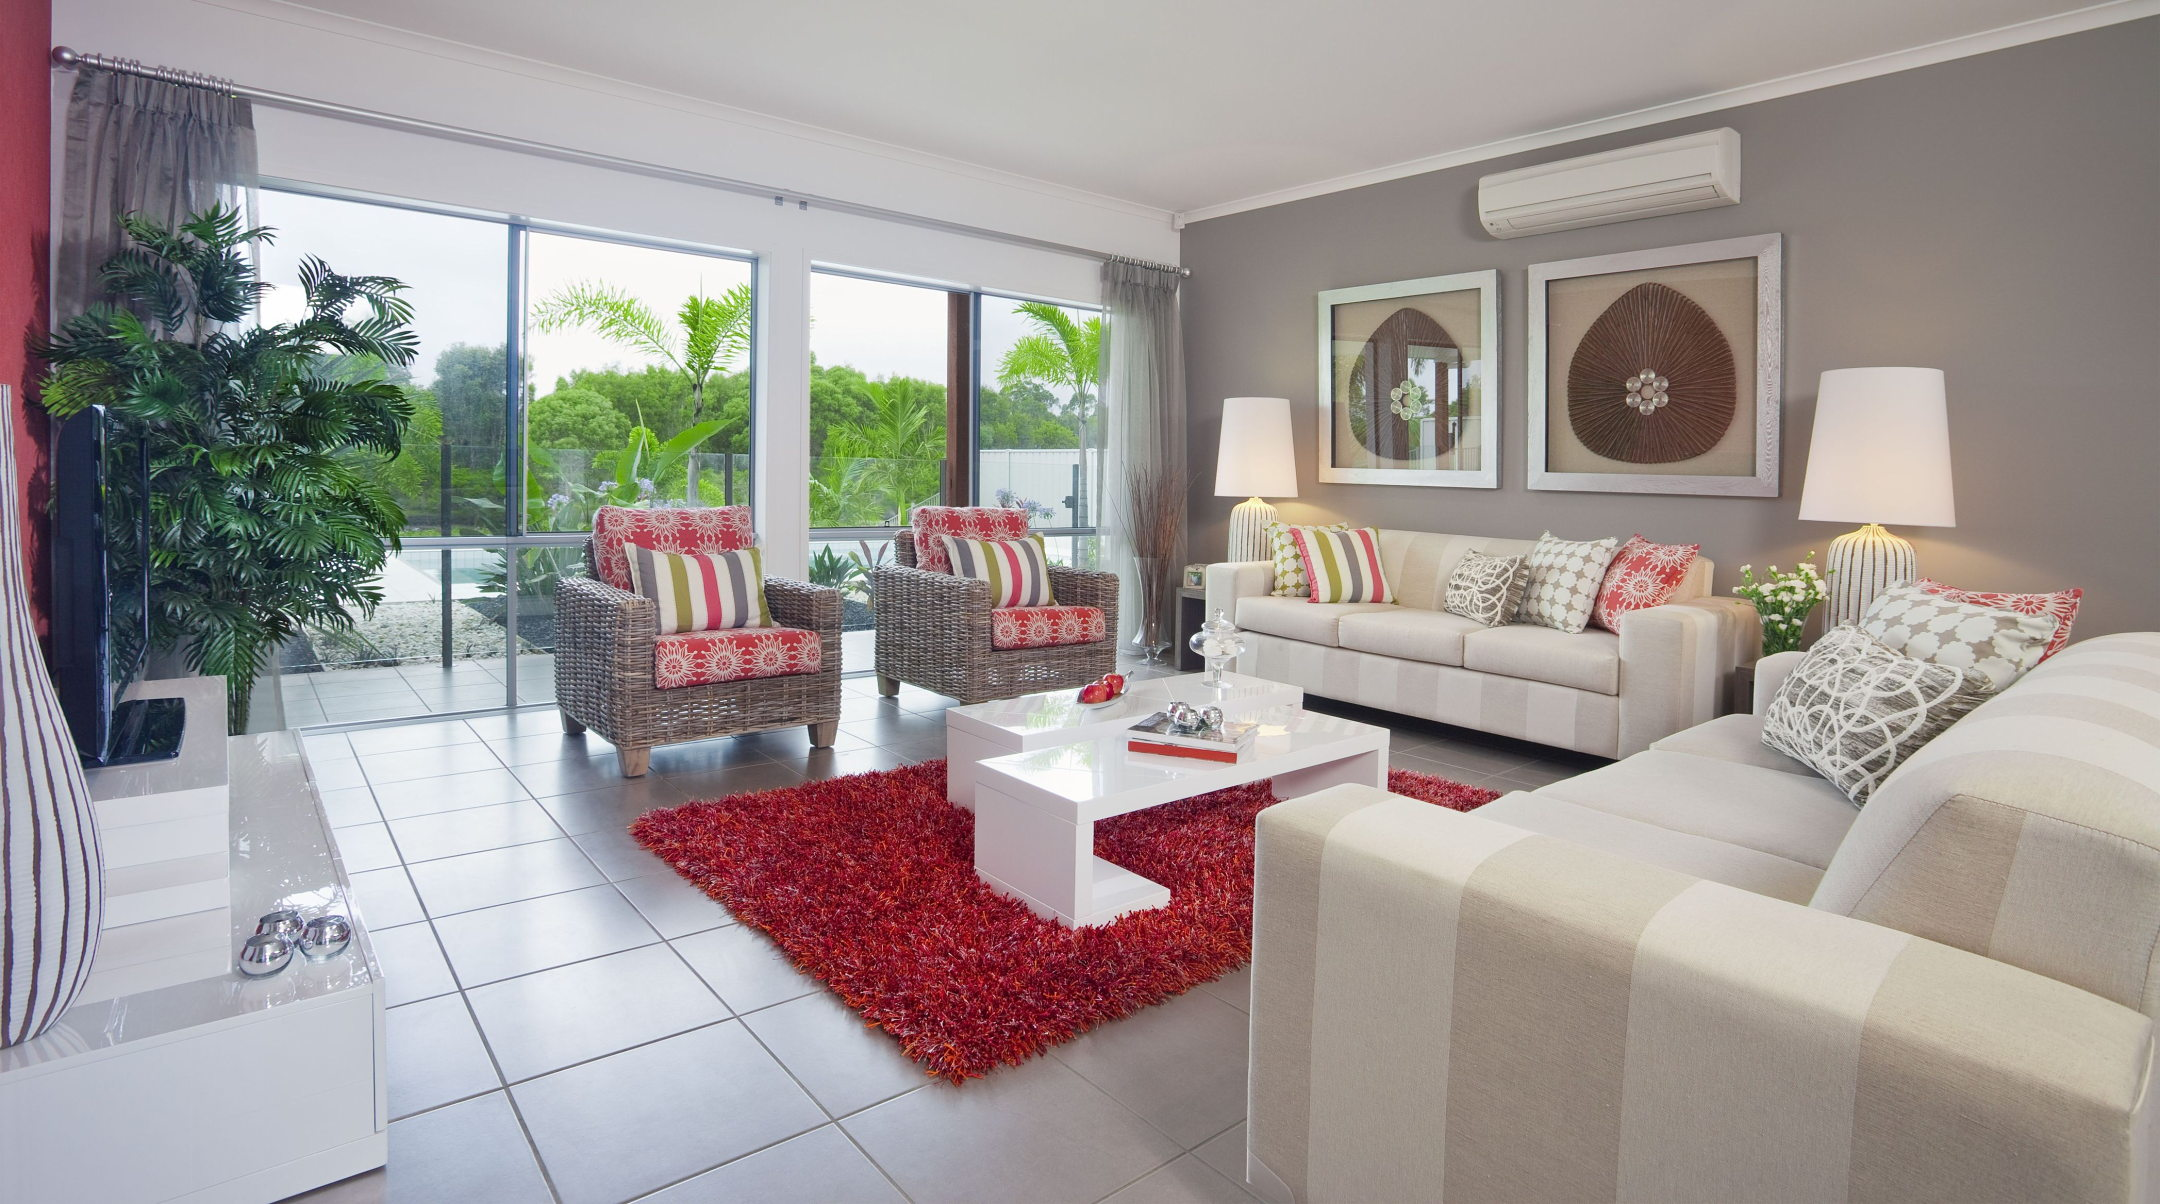 Living room ideas red and grey modern house - Maximizing design of living room by determining its needs ...